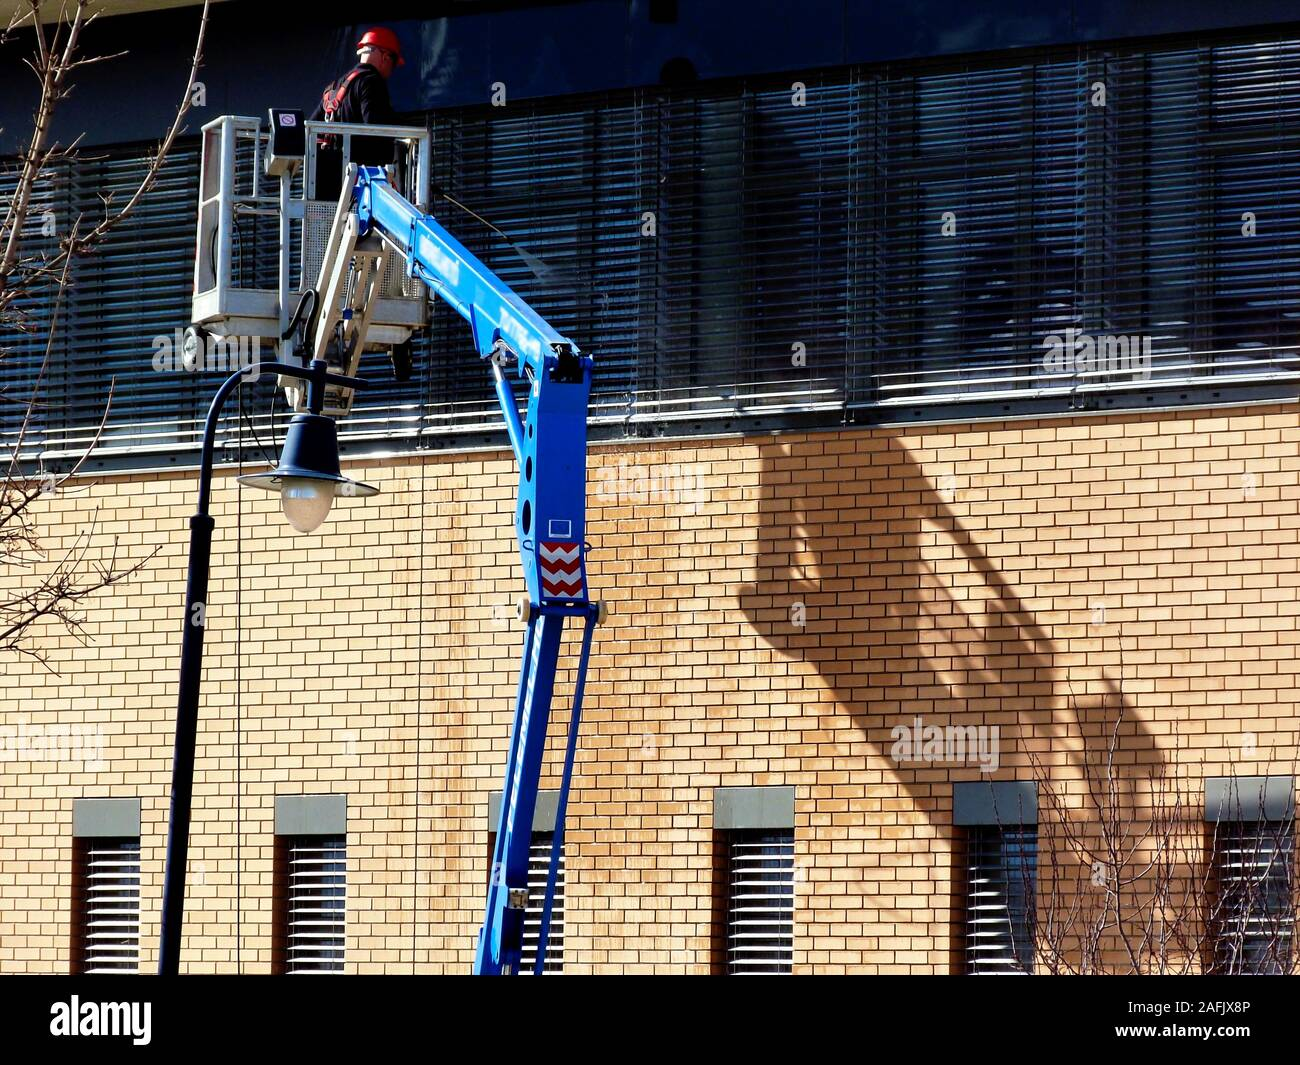 high level window cleaning. telescopic hydraulic work cage on mechanical boom. brick exterior wall. high pressure water jet. worker in red hardhat. Stock Photo